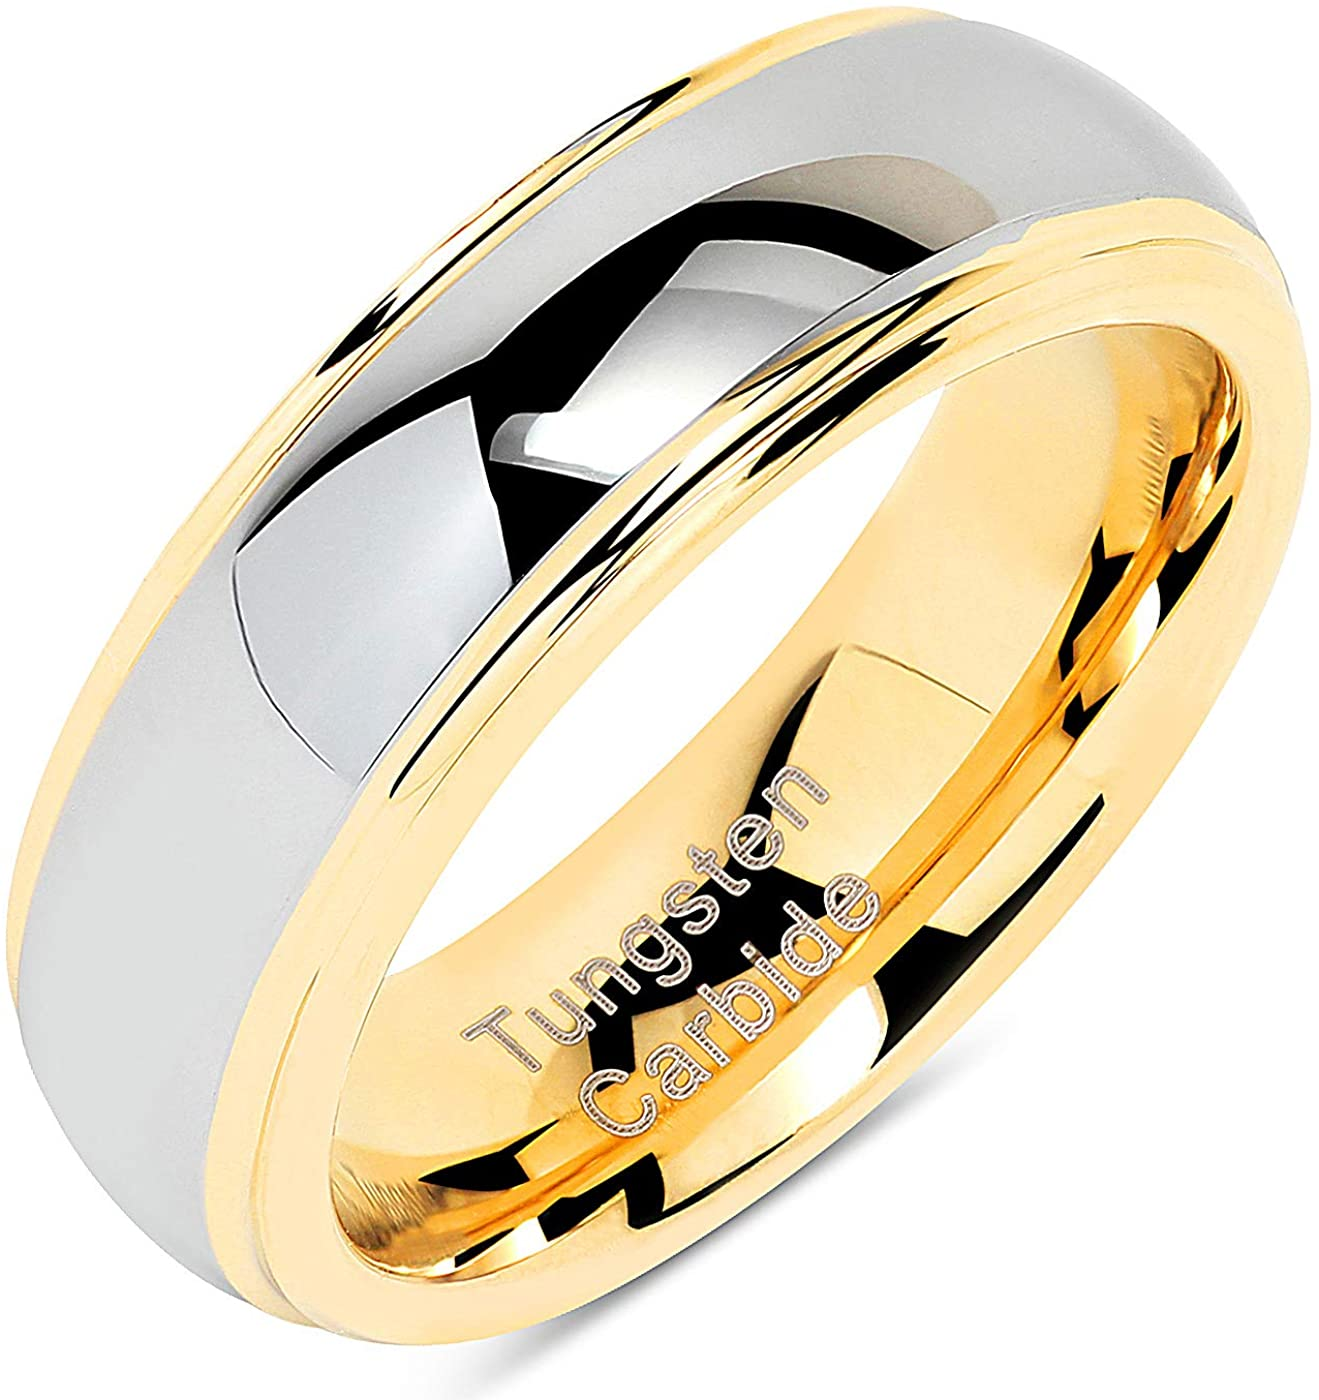 100S JEWELRY Engraved Personlized 6mm Tungsten Rings for Men Women Wedding Band Two Tones Gold Silver Engagement Size 5-13